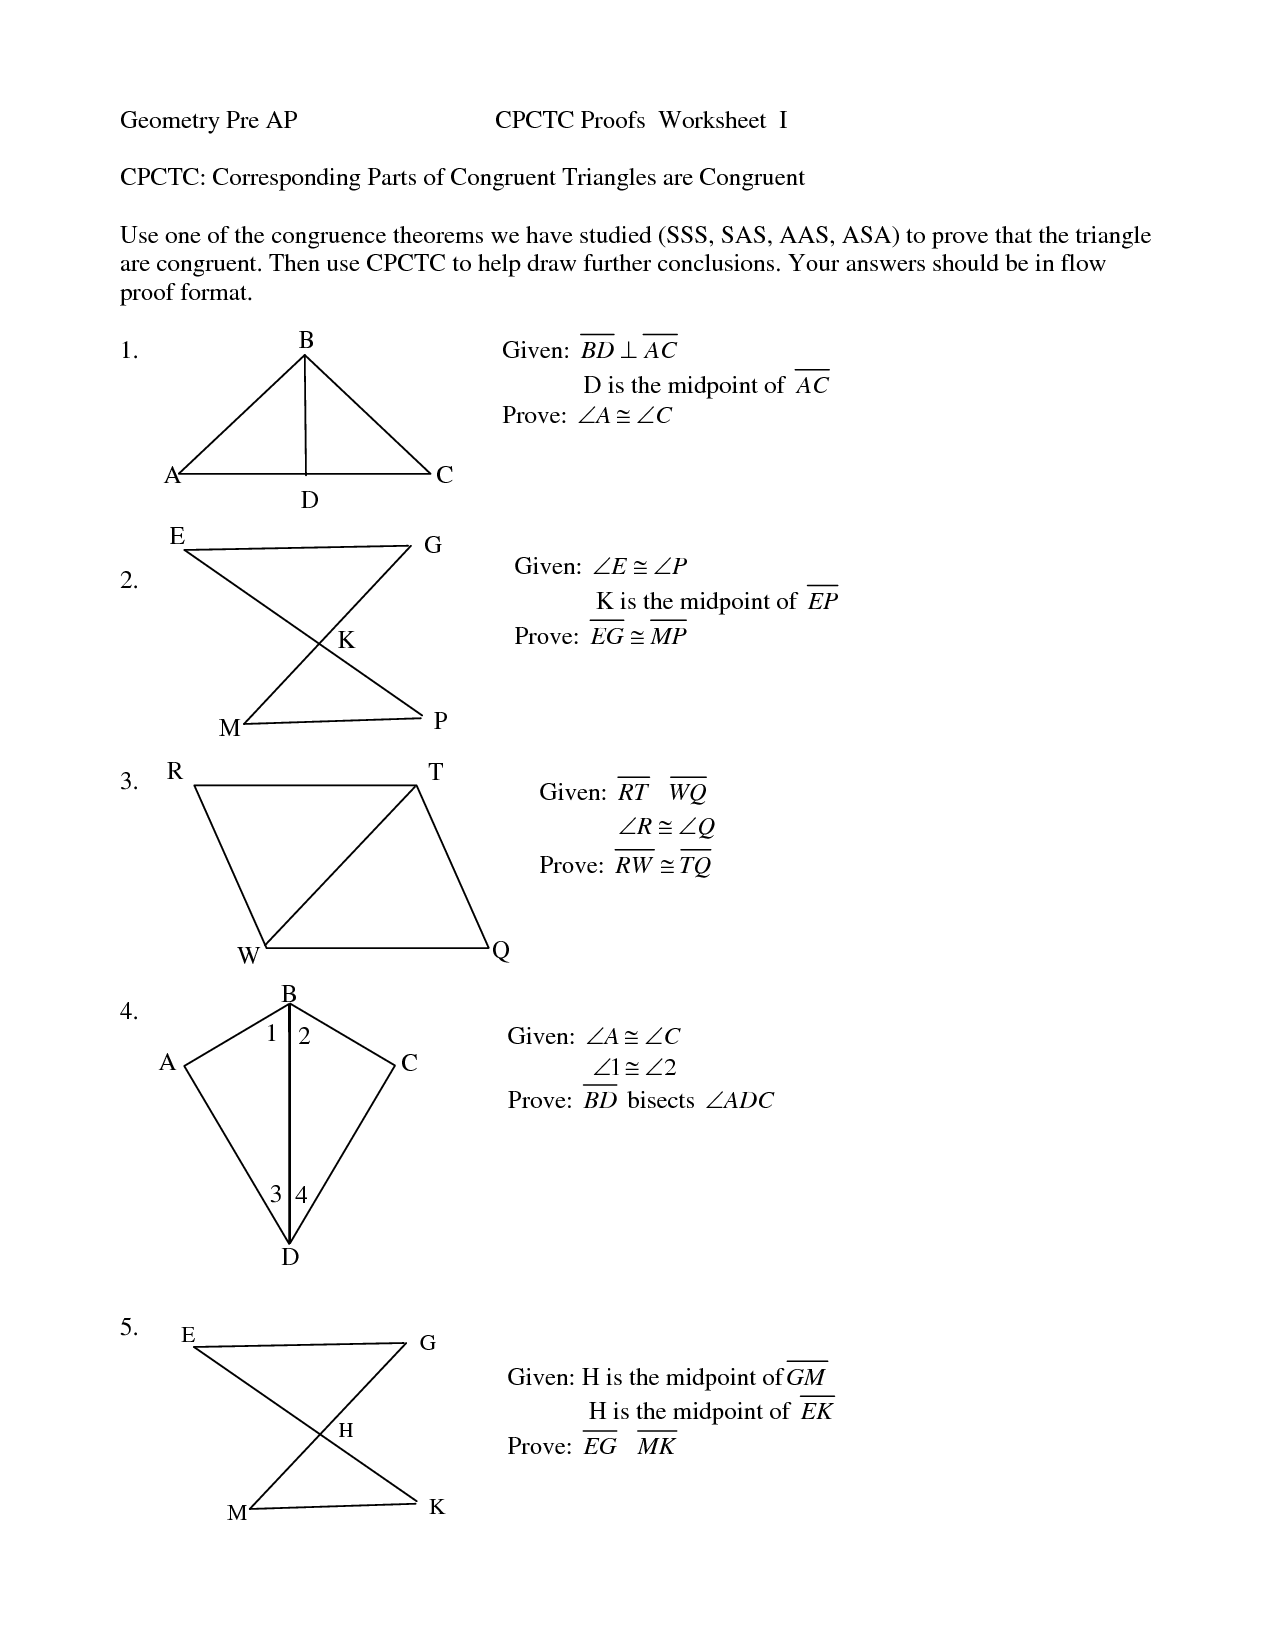 Proving Triangles Congruent Worksheet Answer Key Previous